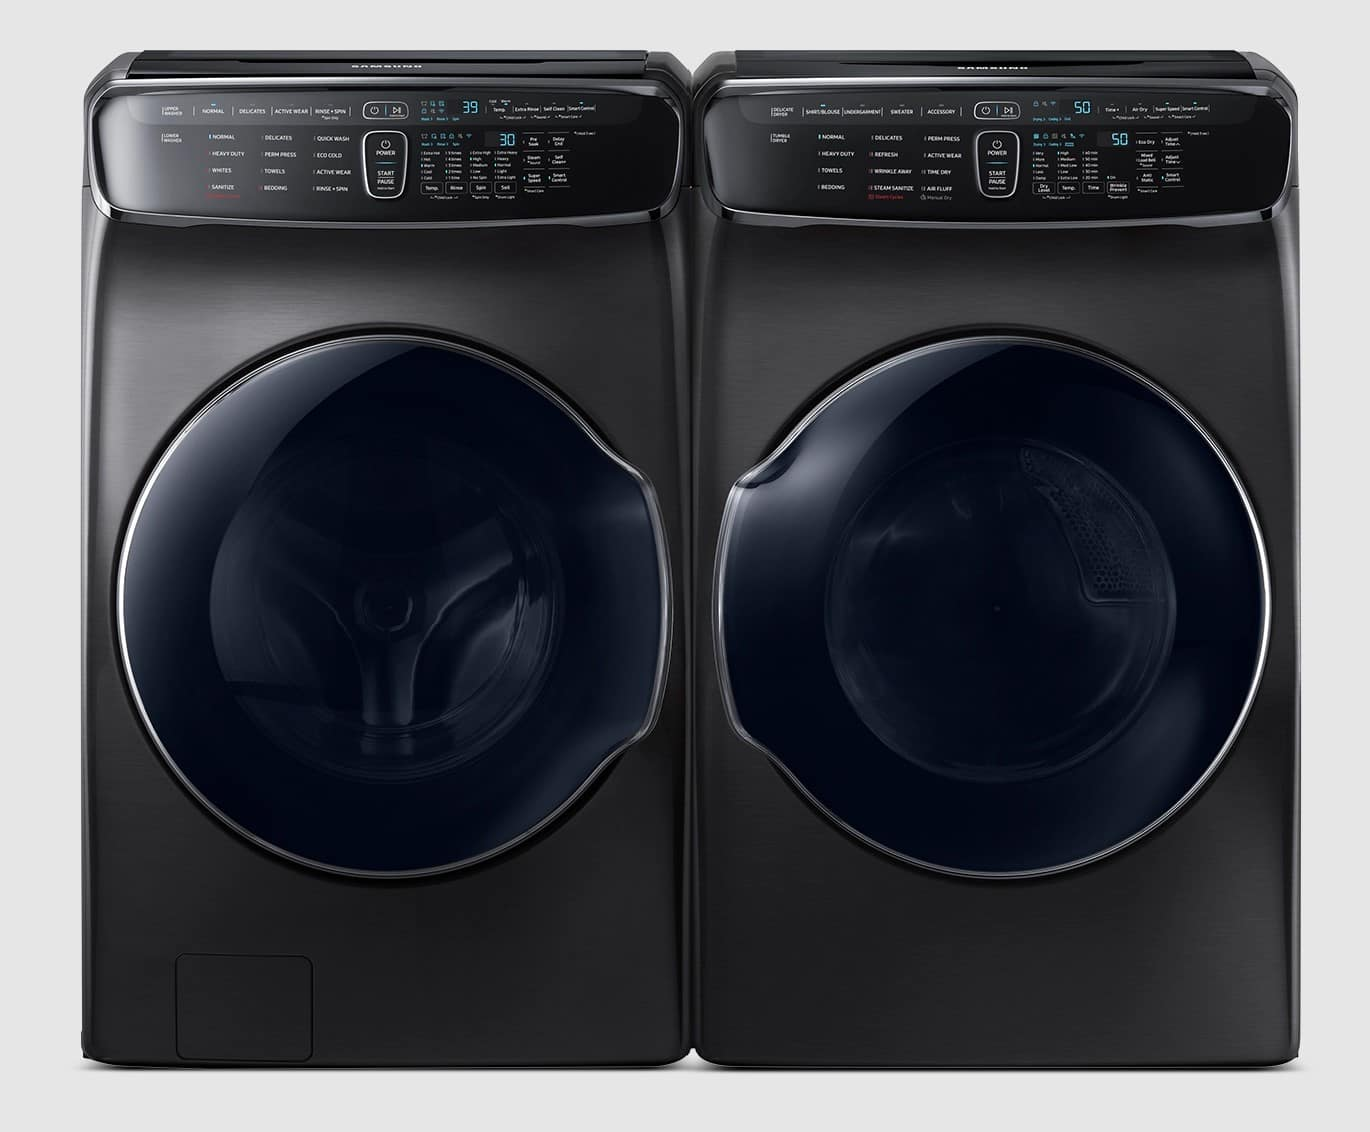 Samsung: Up to 40% off a premium washer and dryer set. From $1199